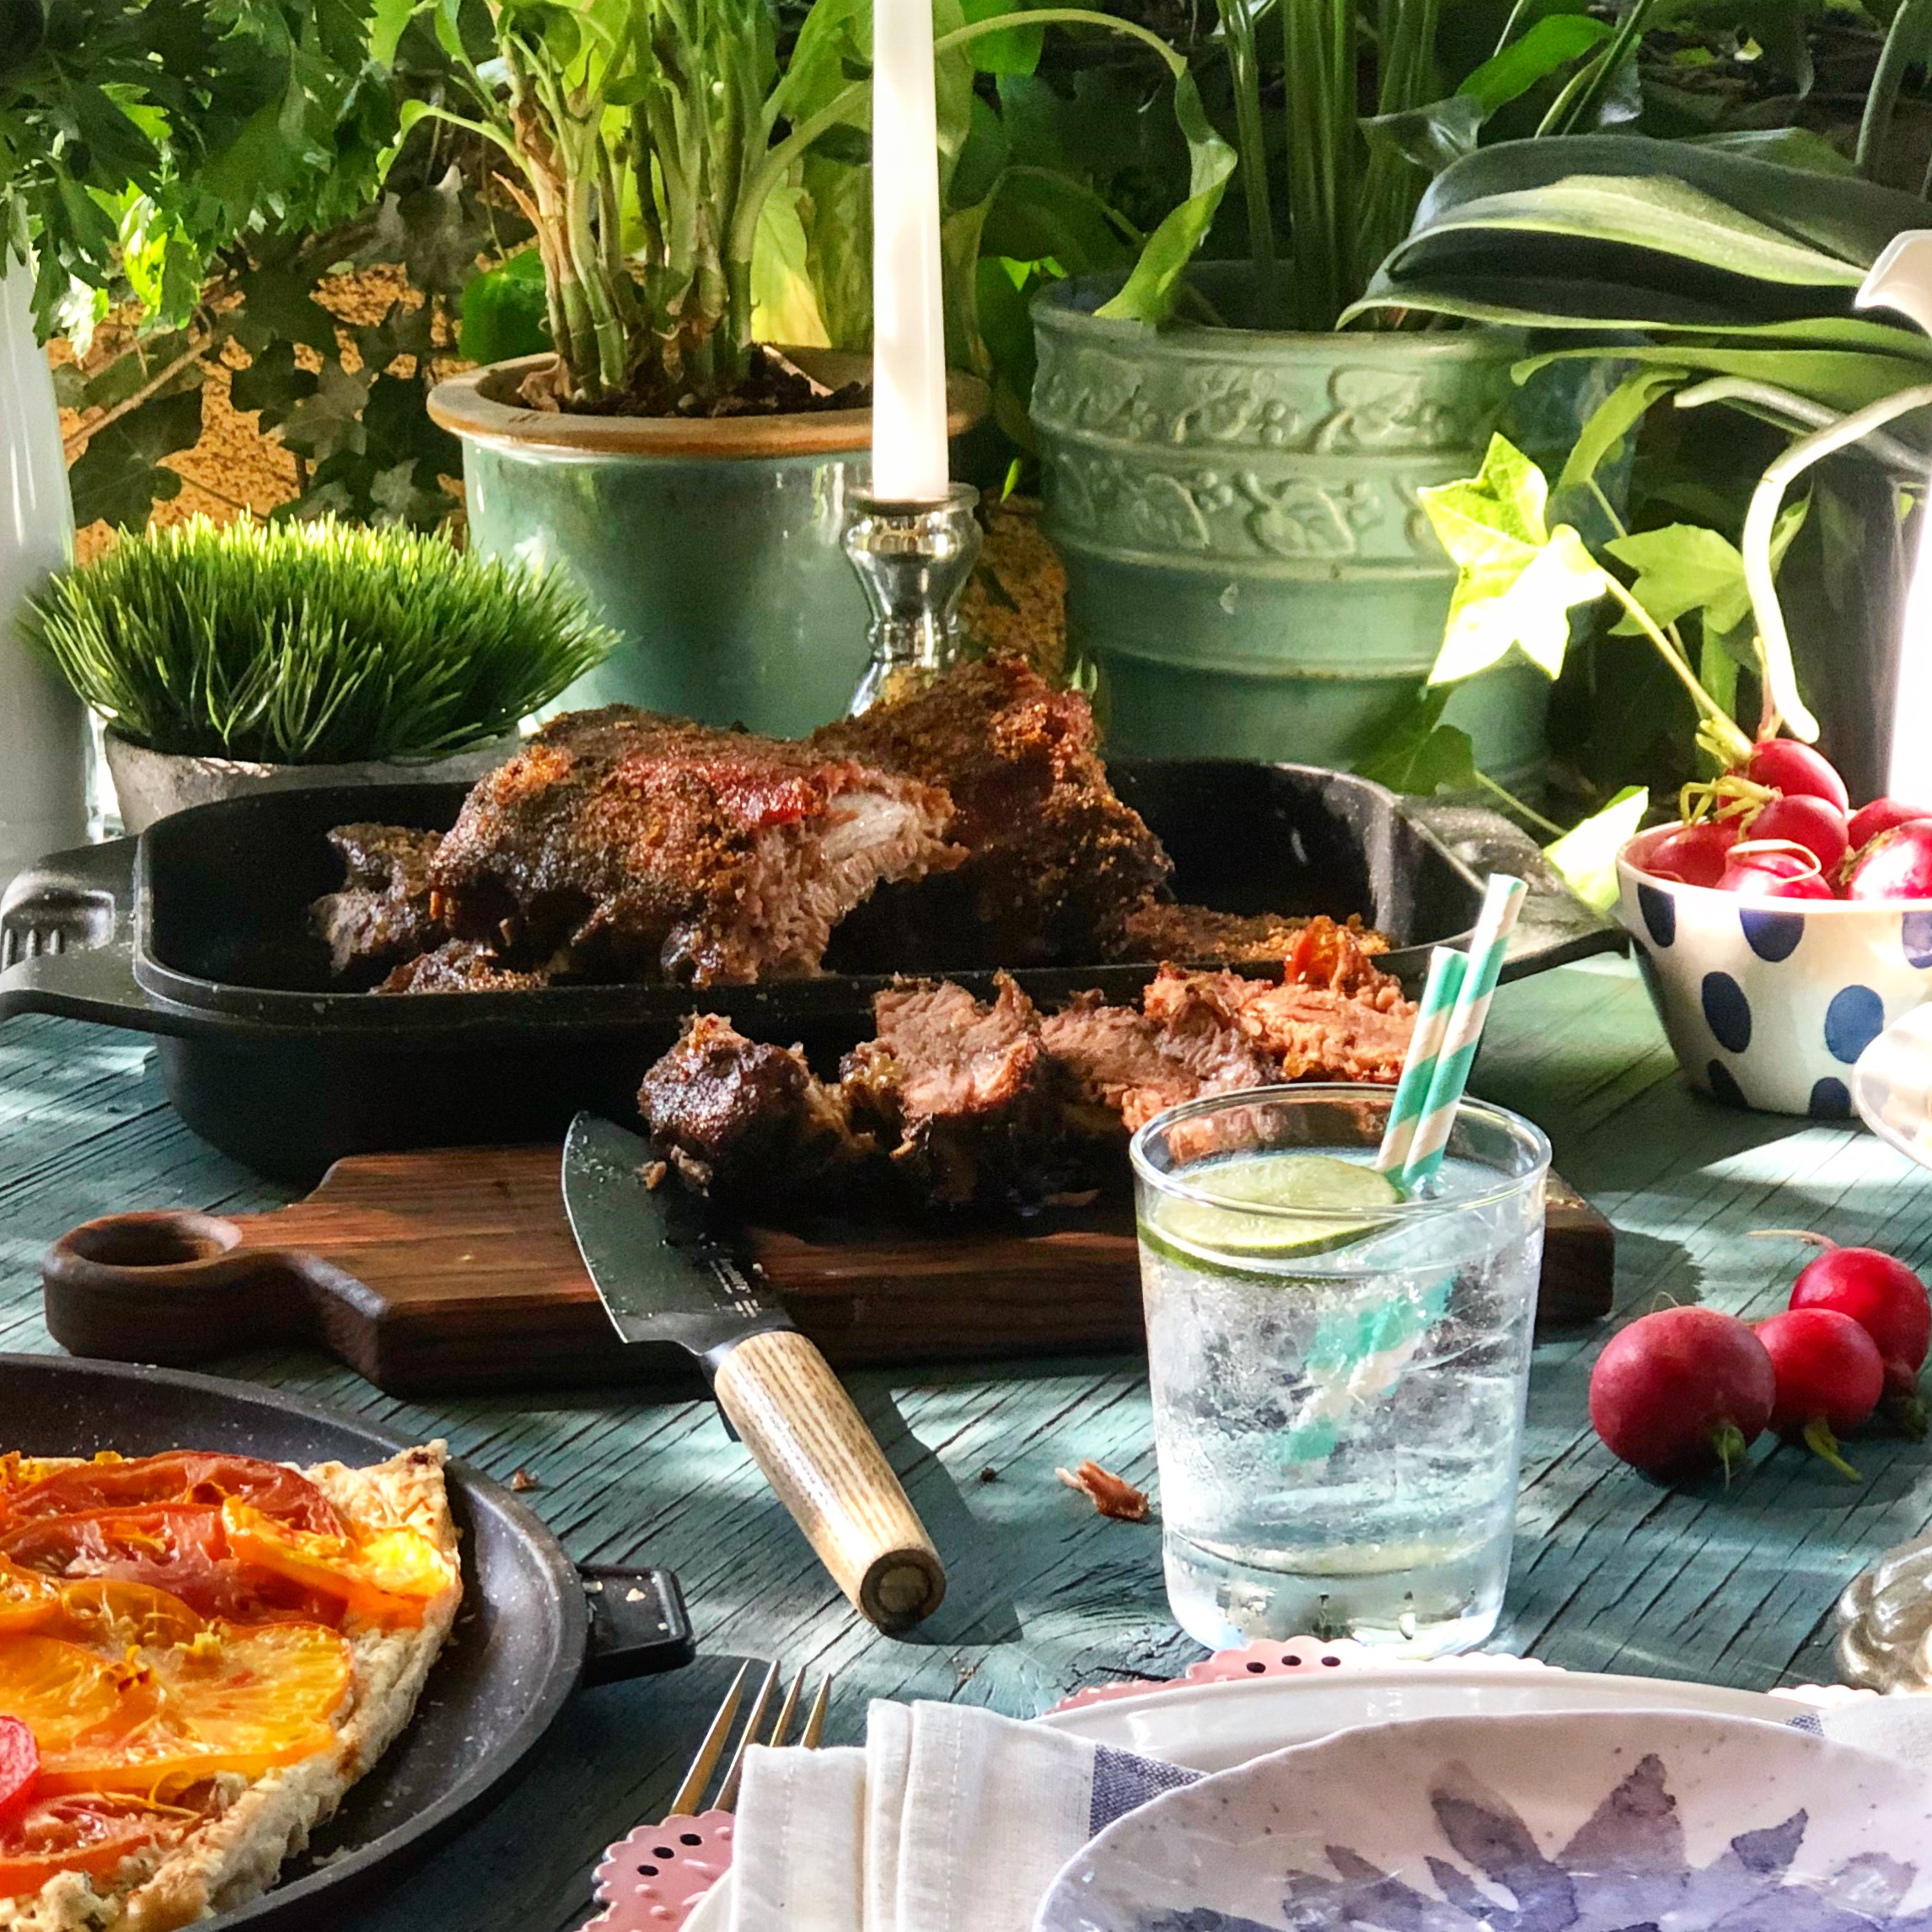 Slow-cooked ribs. Simple tomato tart. Layered salad of your Mom's favorite things (plus garlic croutons and quick-pickle carrots). Your Mother's Day menu.